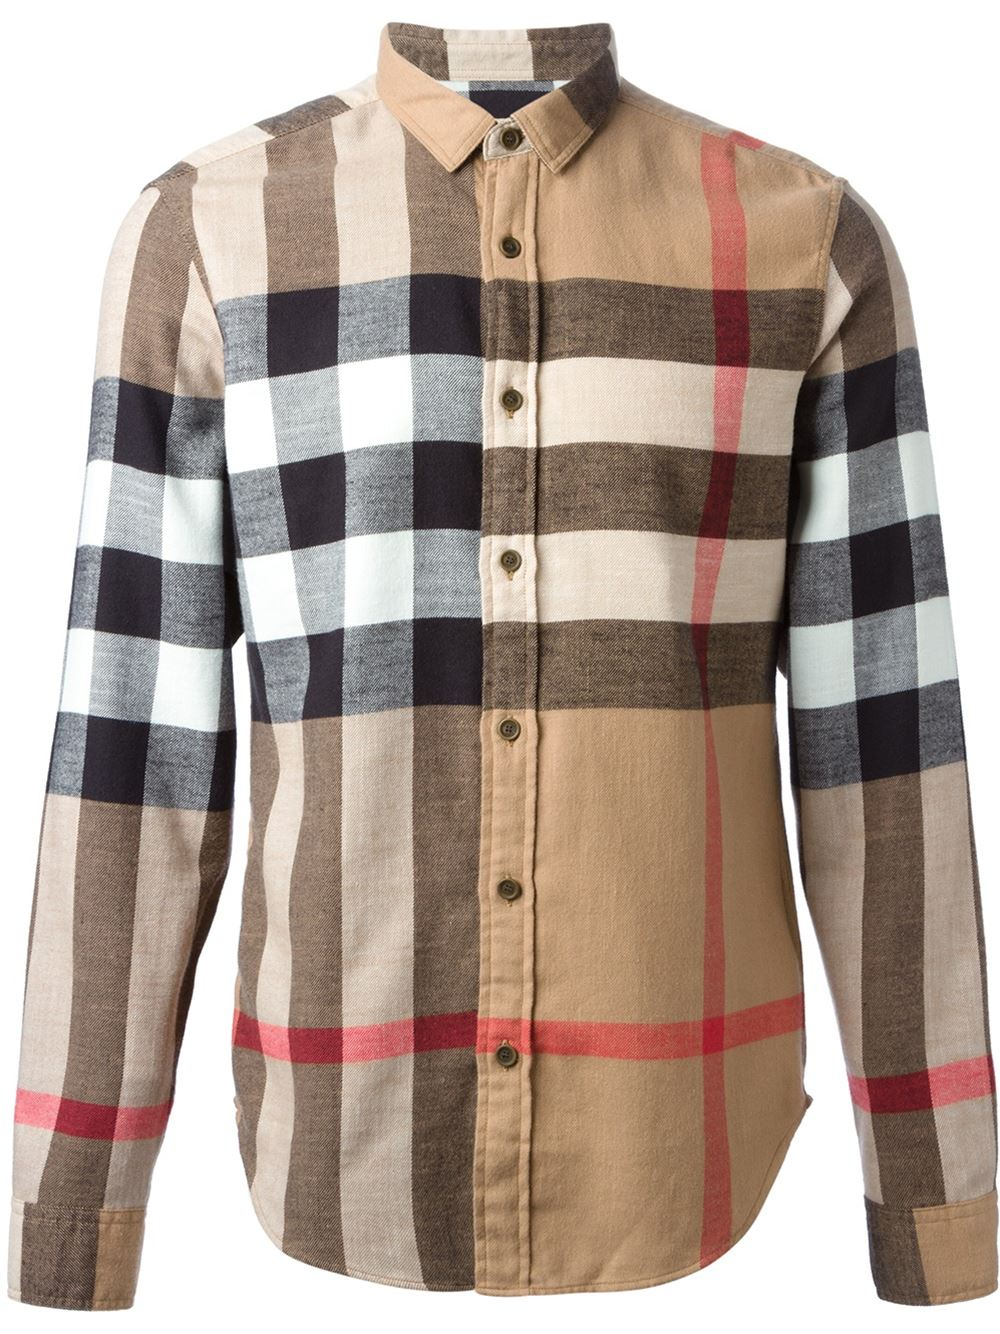 Burberry brit 39 house check 39 shirt in natural for men lyst for Burberry brit checked shirt